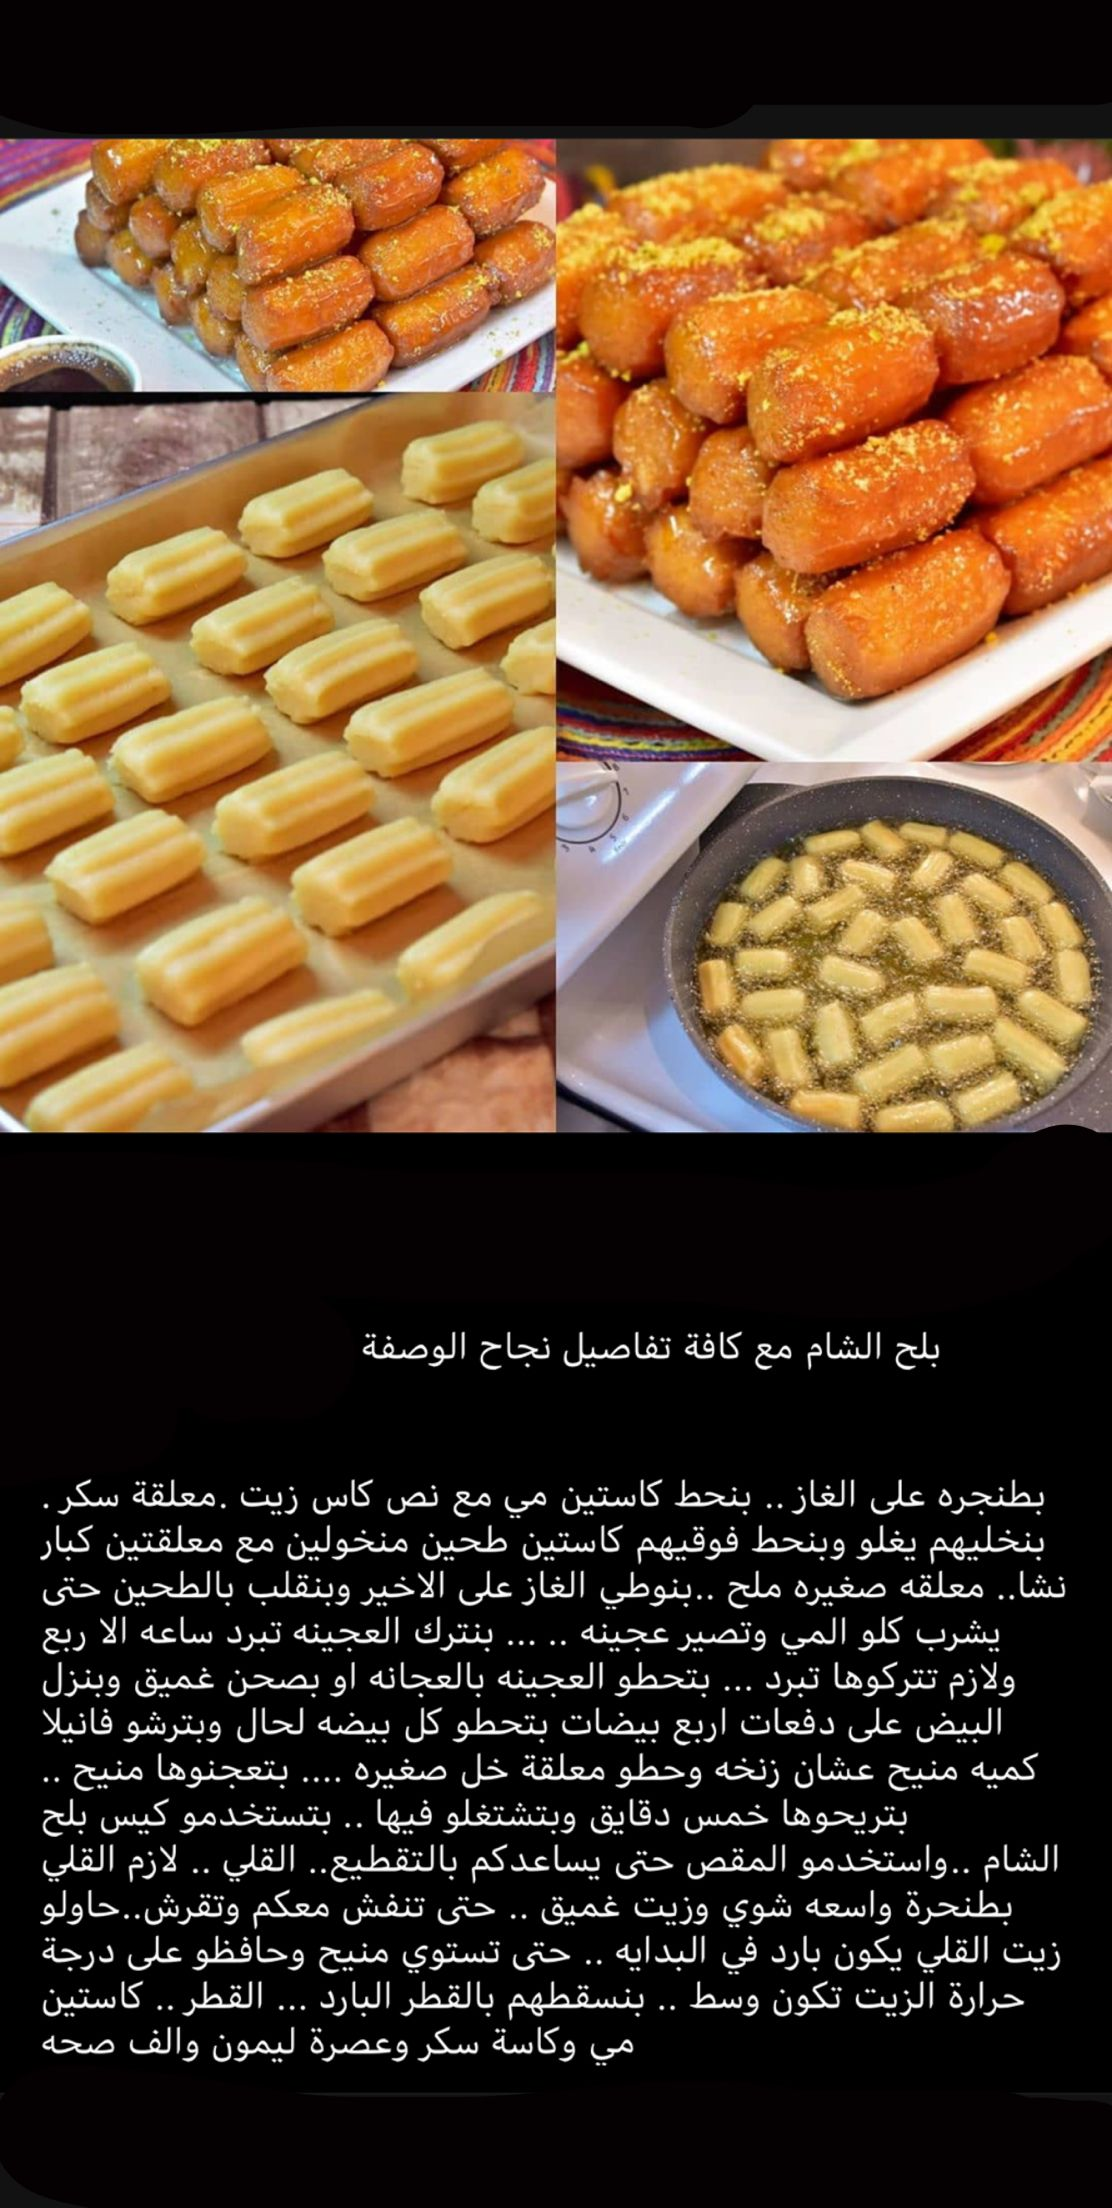 Pin By Goooory 11 On طبخات Tasty Baking Food Receipes Cookout Food